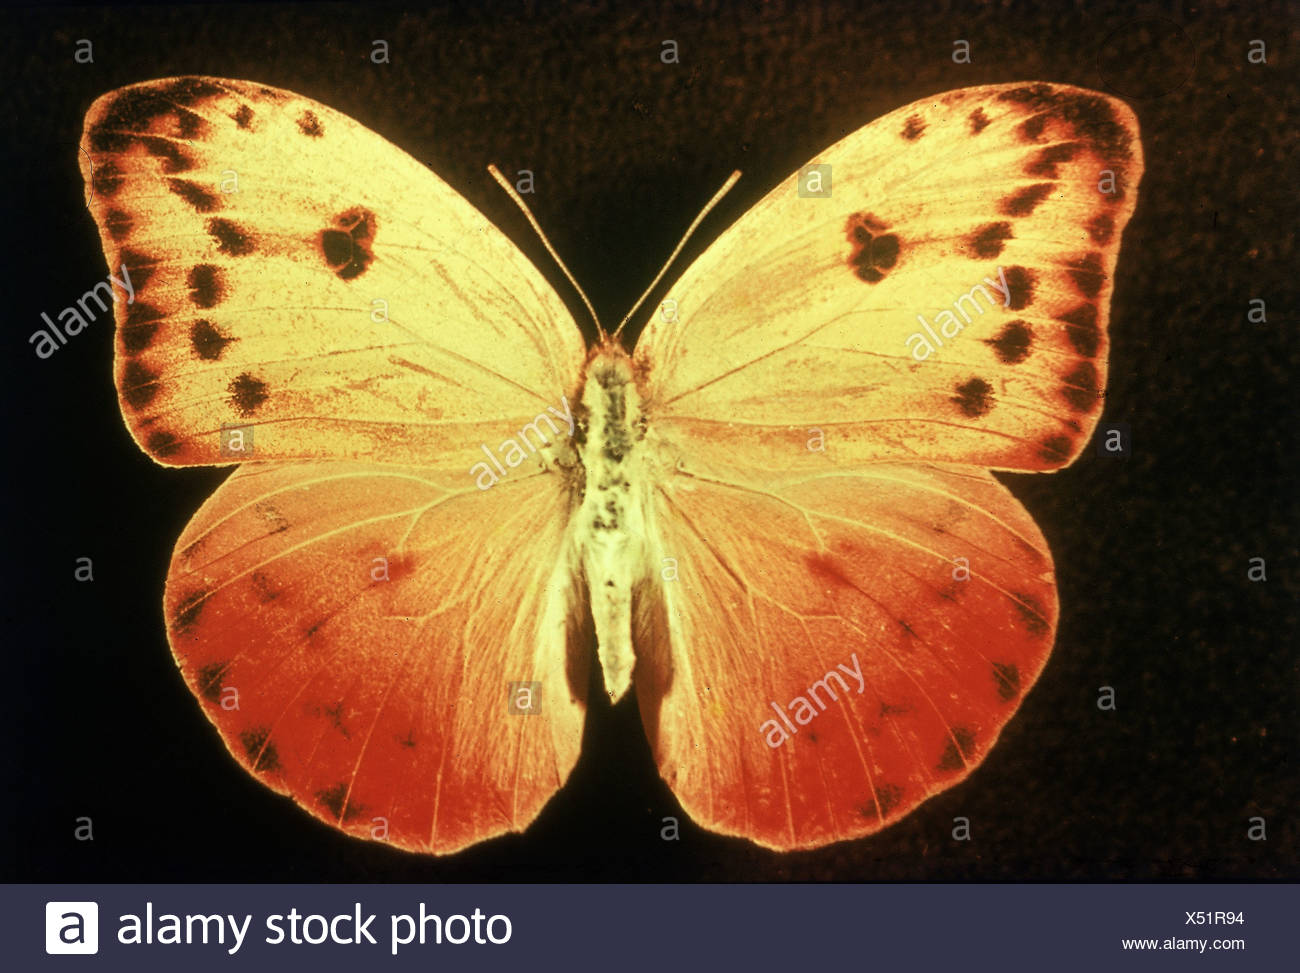 zoology / animals, insect, butterflies, Catopsilia avellaneda, distribution: Cuba, Lepidoptera, butterfly, moth, papilionoidea, - Stock Image